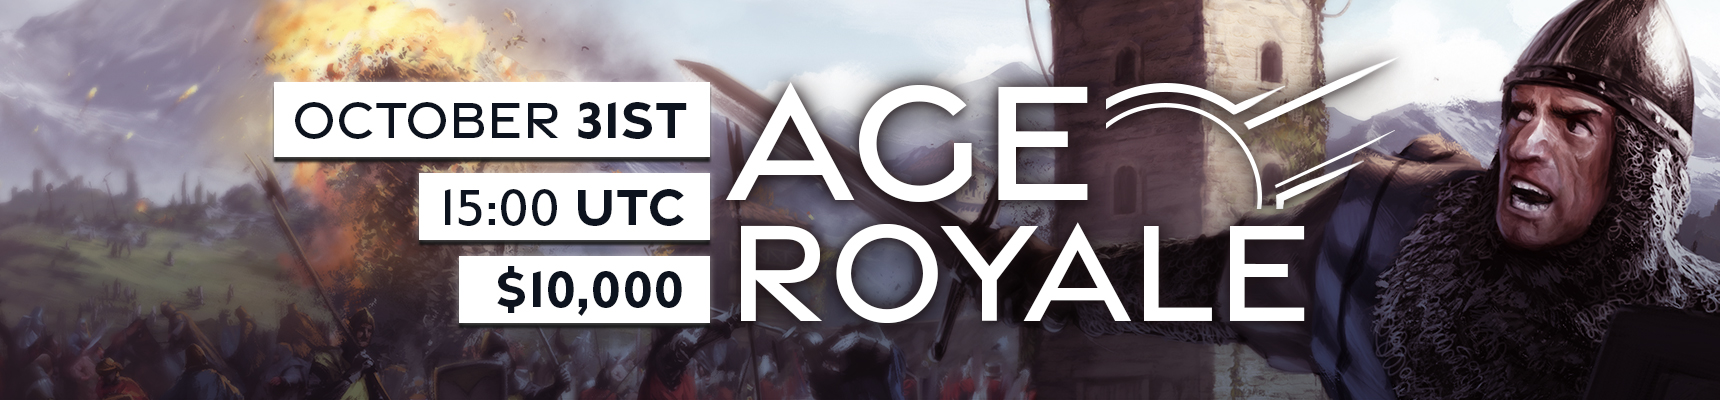 AgeRoyal Banner 2 Age Royale Tournament Celebrates Age of Empires II: DE Anniversary Update